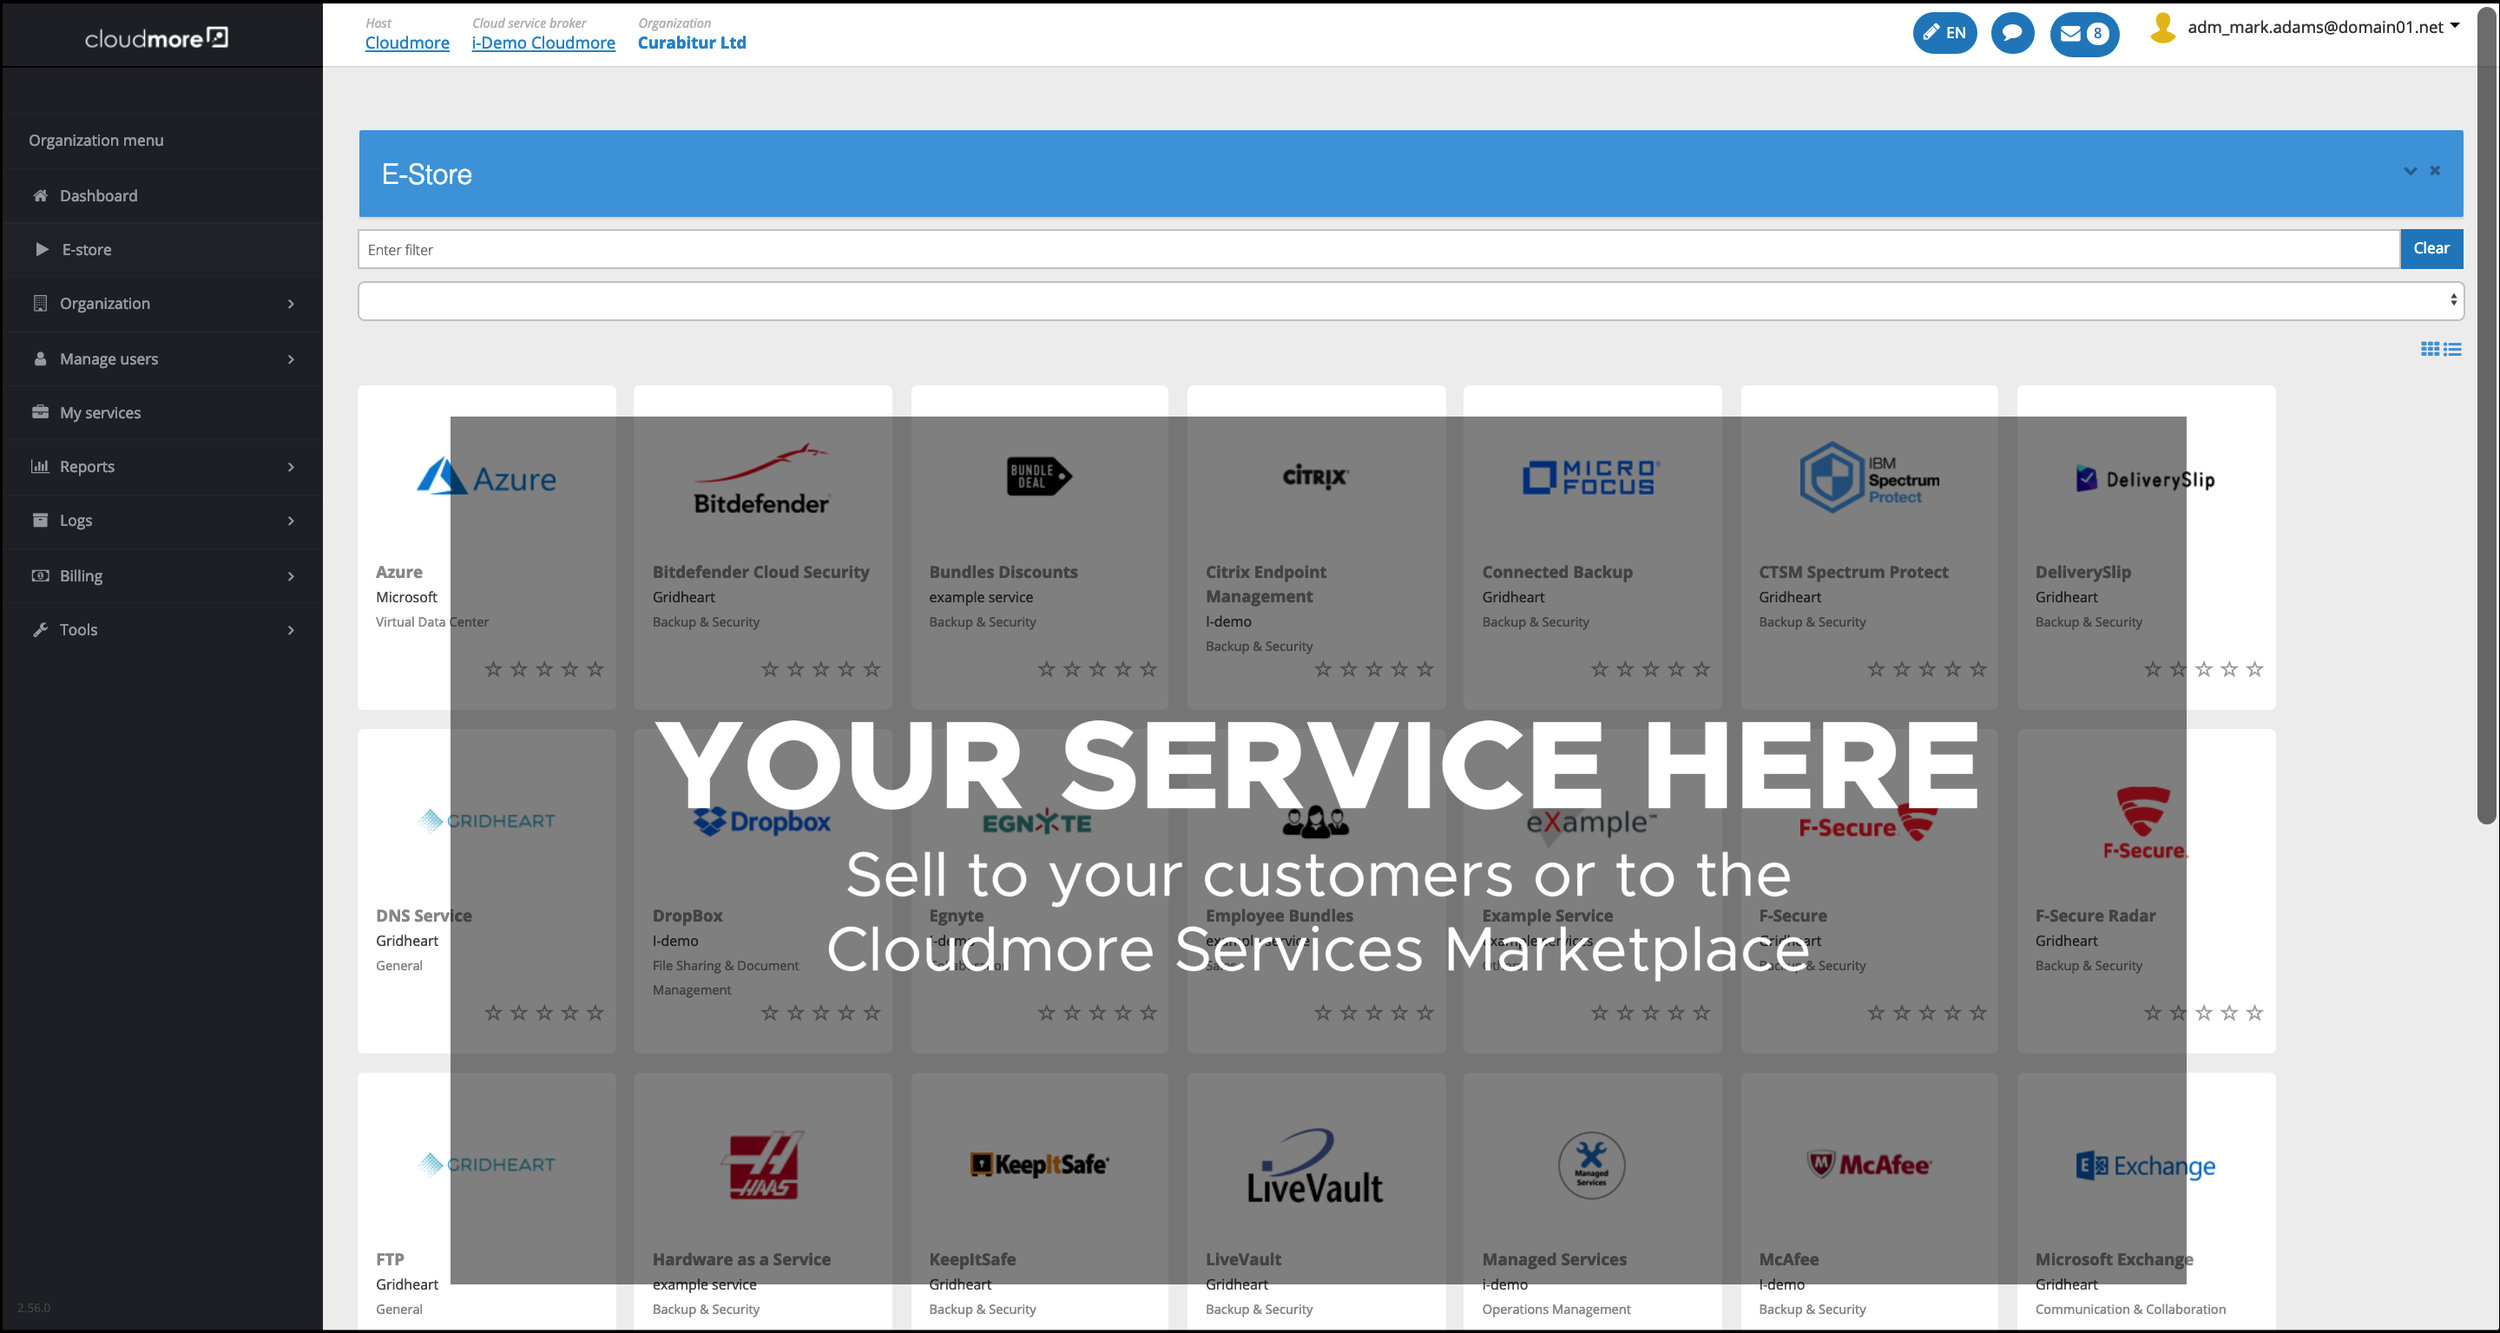 Service Catalog - Get a fast start in the Cloud.Add your own services and combine with other services, available instantly, through the Cloudmore Service Catalog.